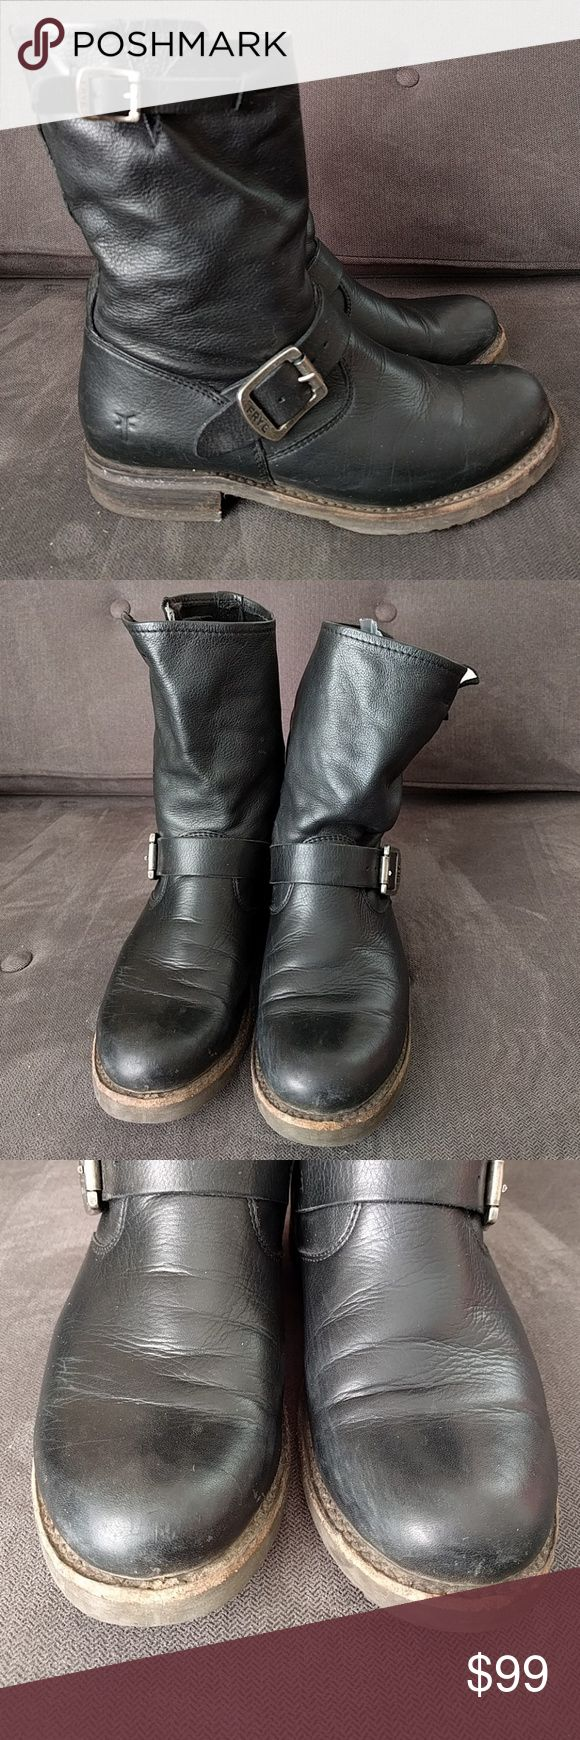 Frye Veronica black leather slouchy boots sz 6.5